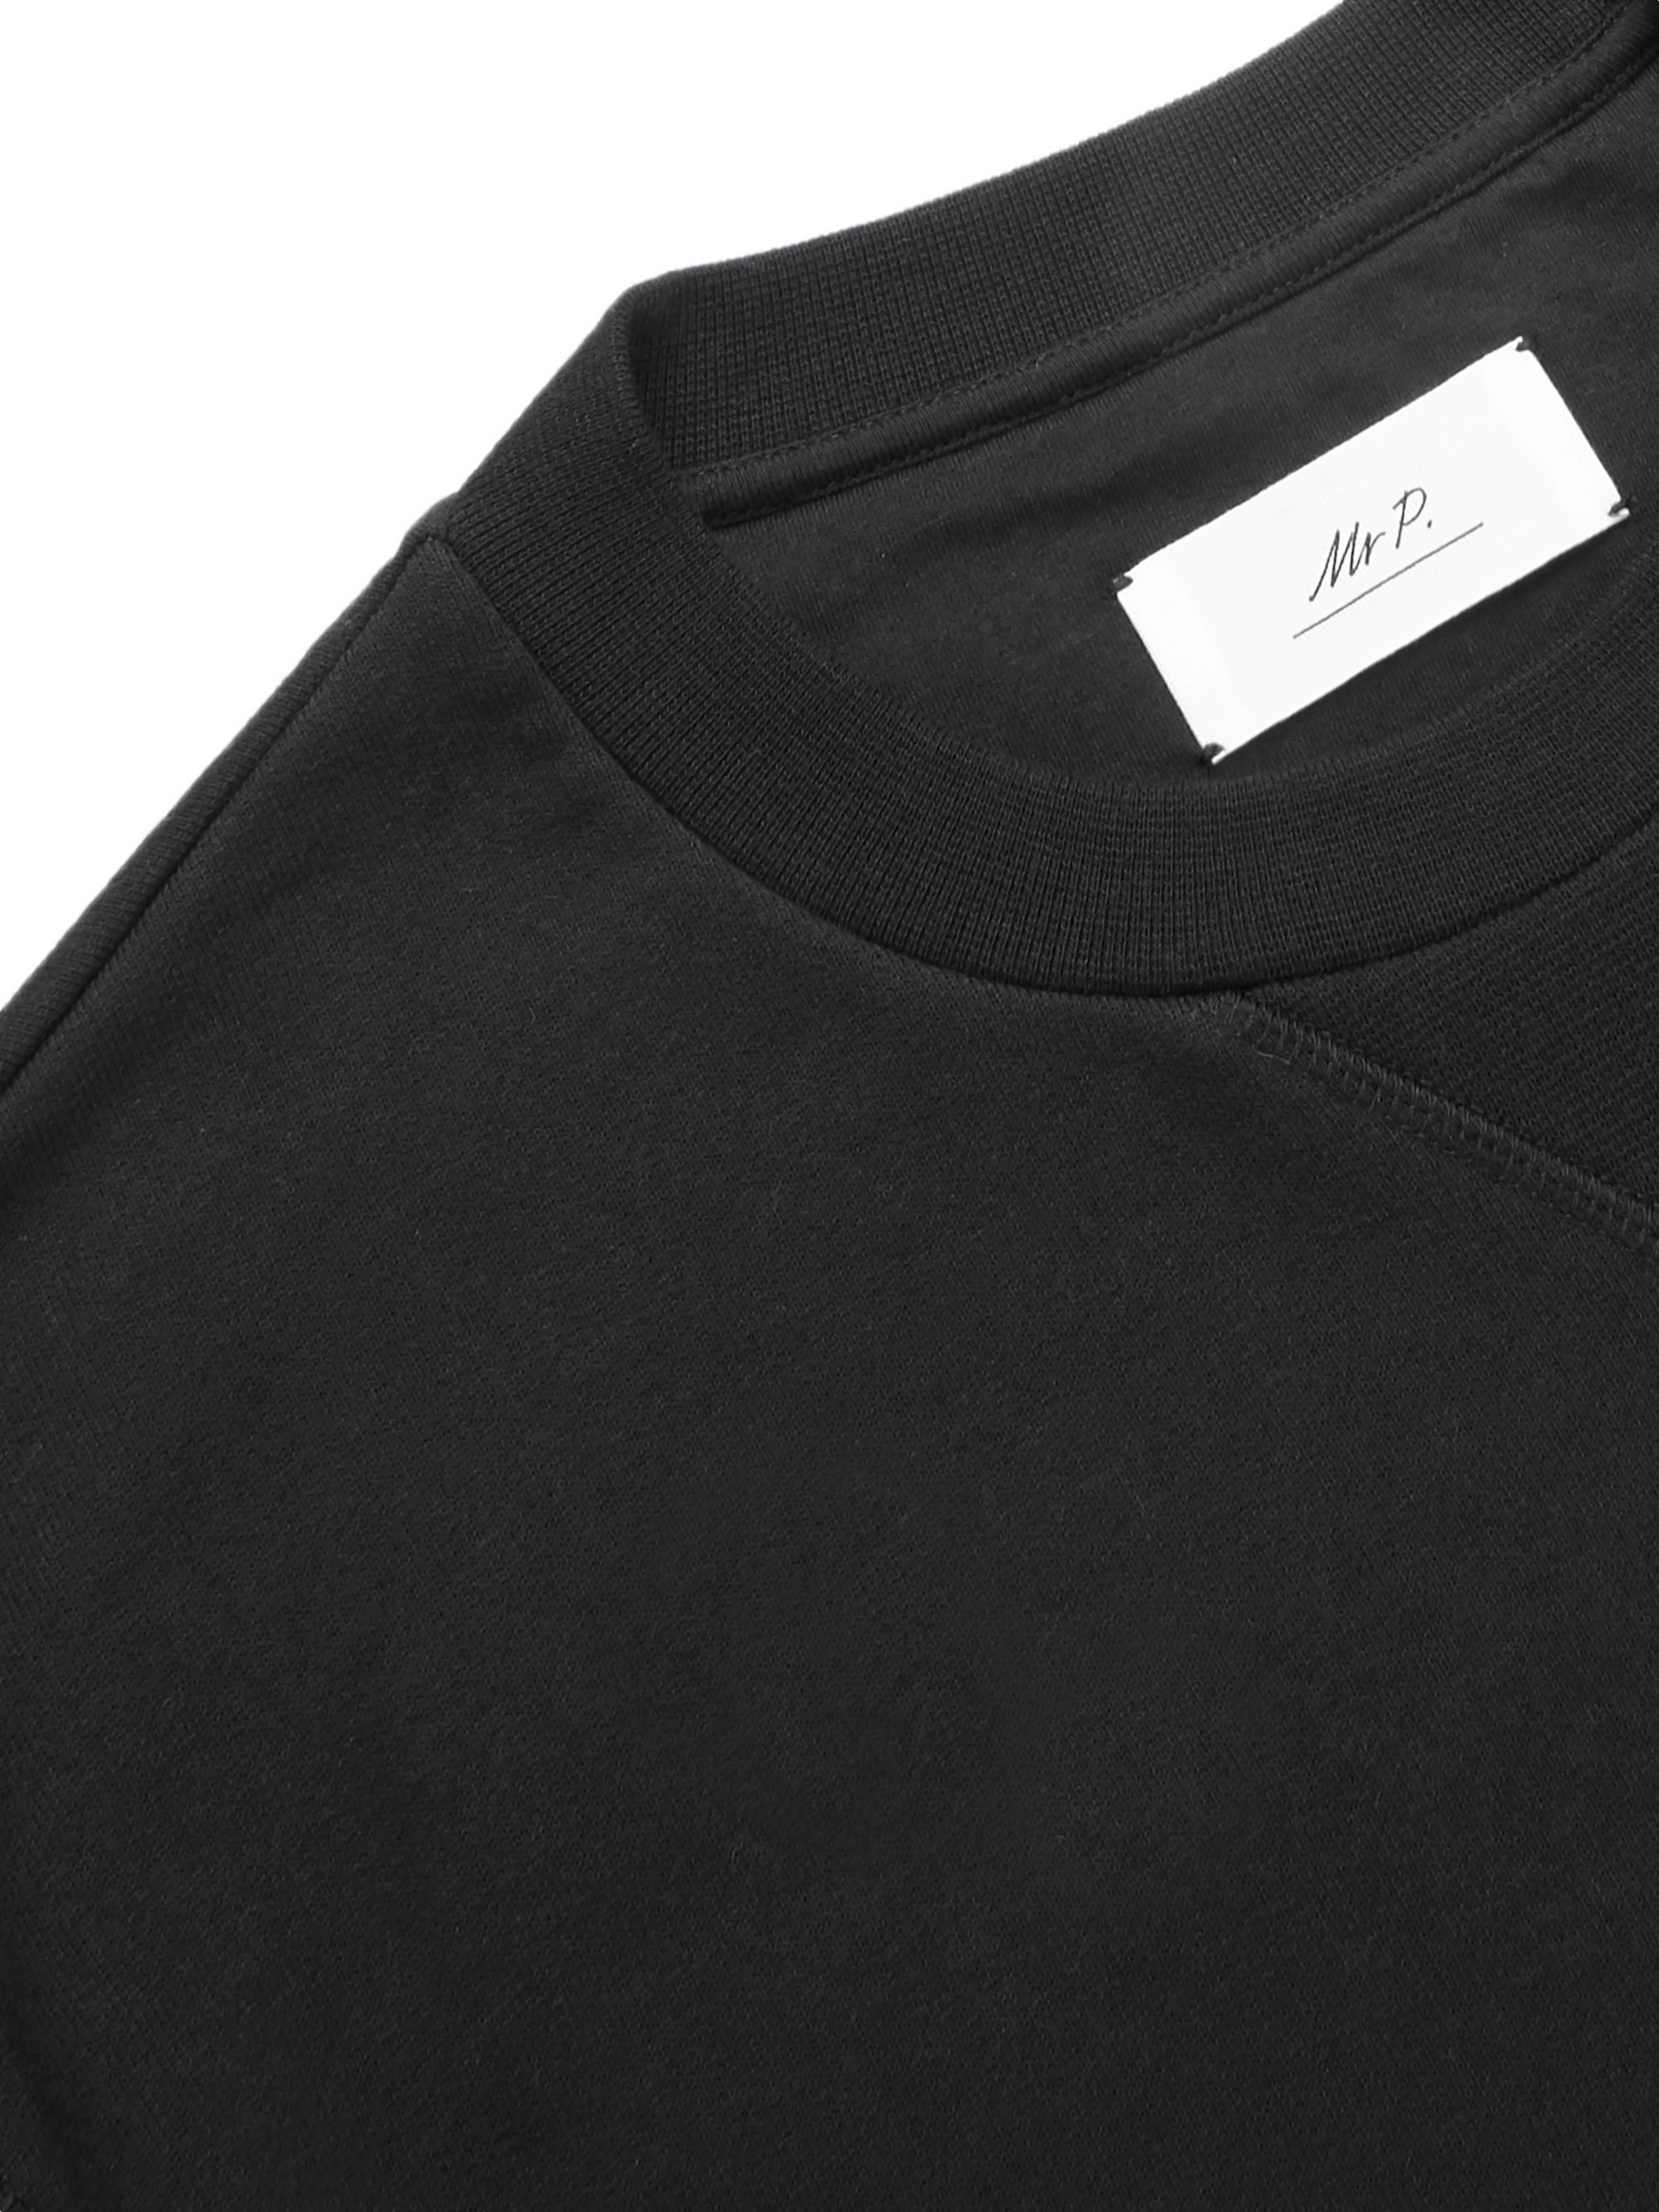 Mr P. Loopback Cotton-Jersey Sweatshirt